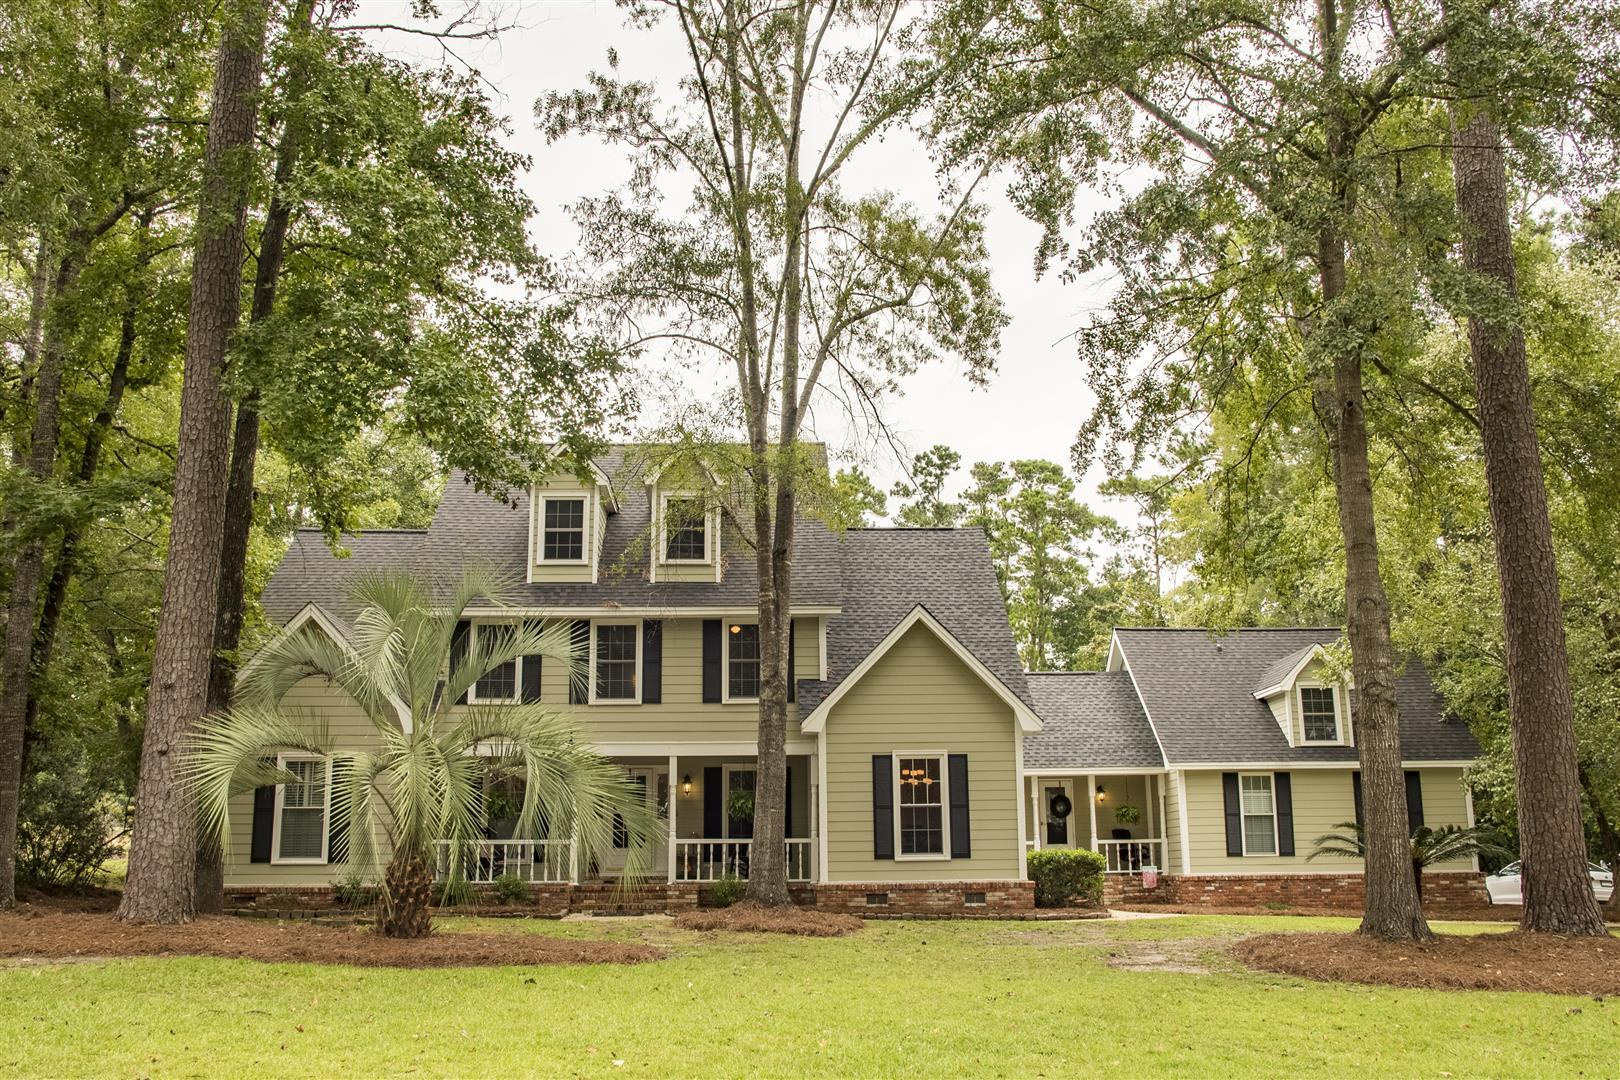 Photo of 415 Country Club Blvd, Summerville, SC 29483